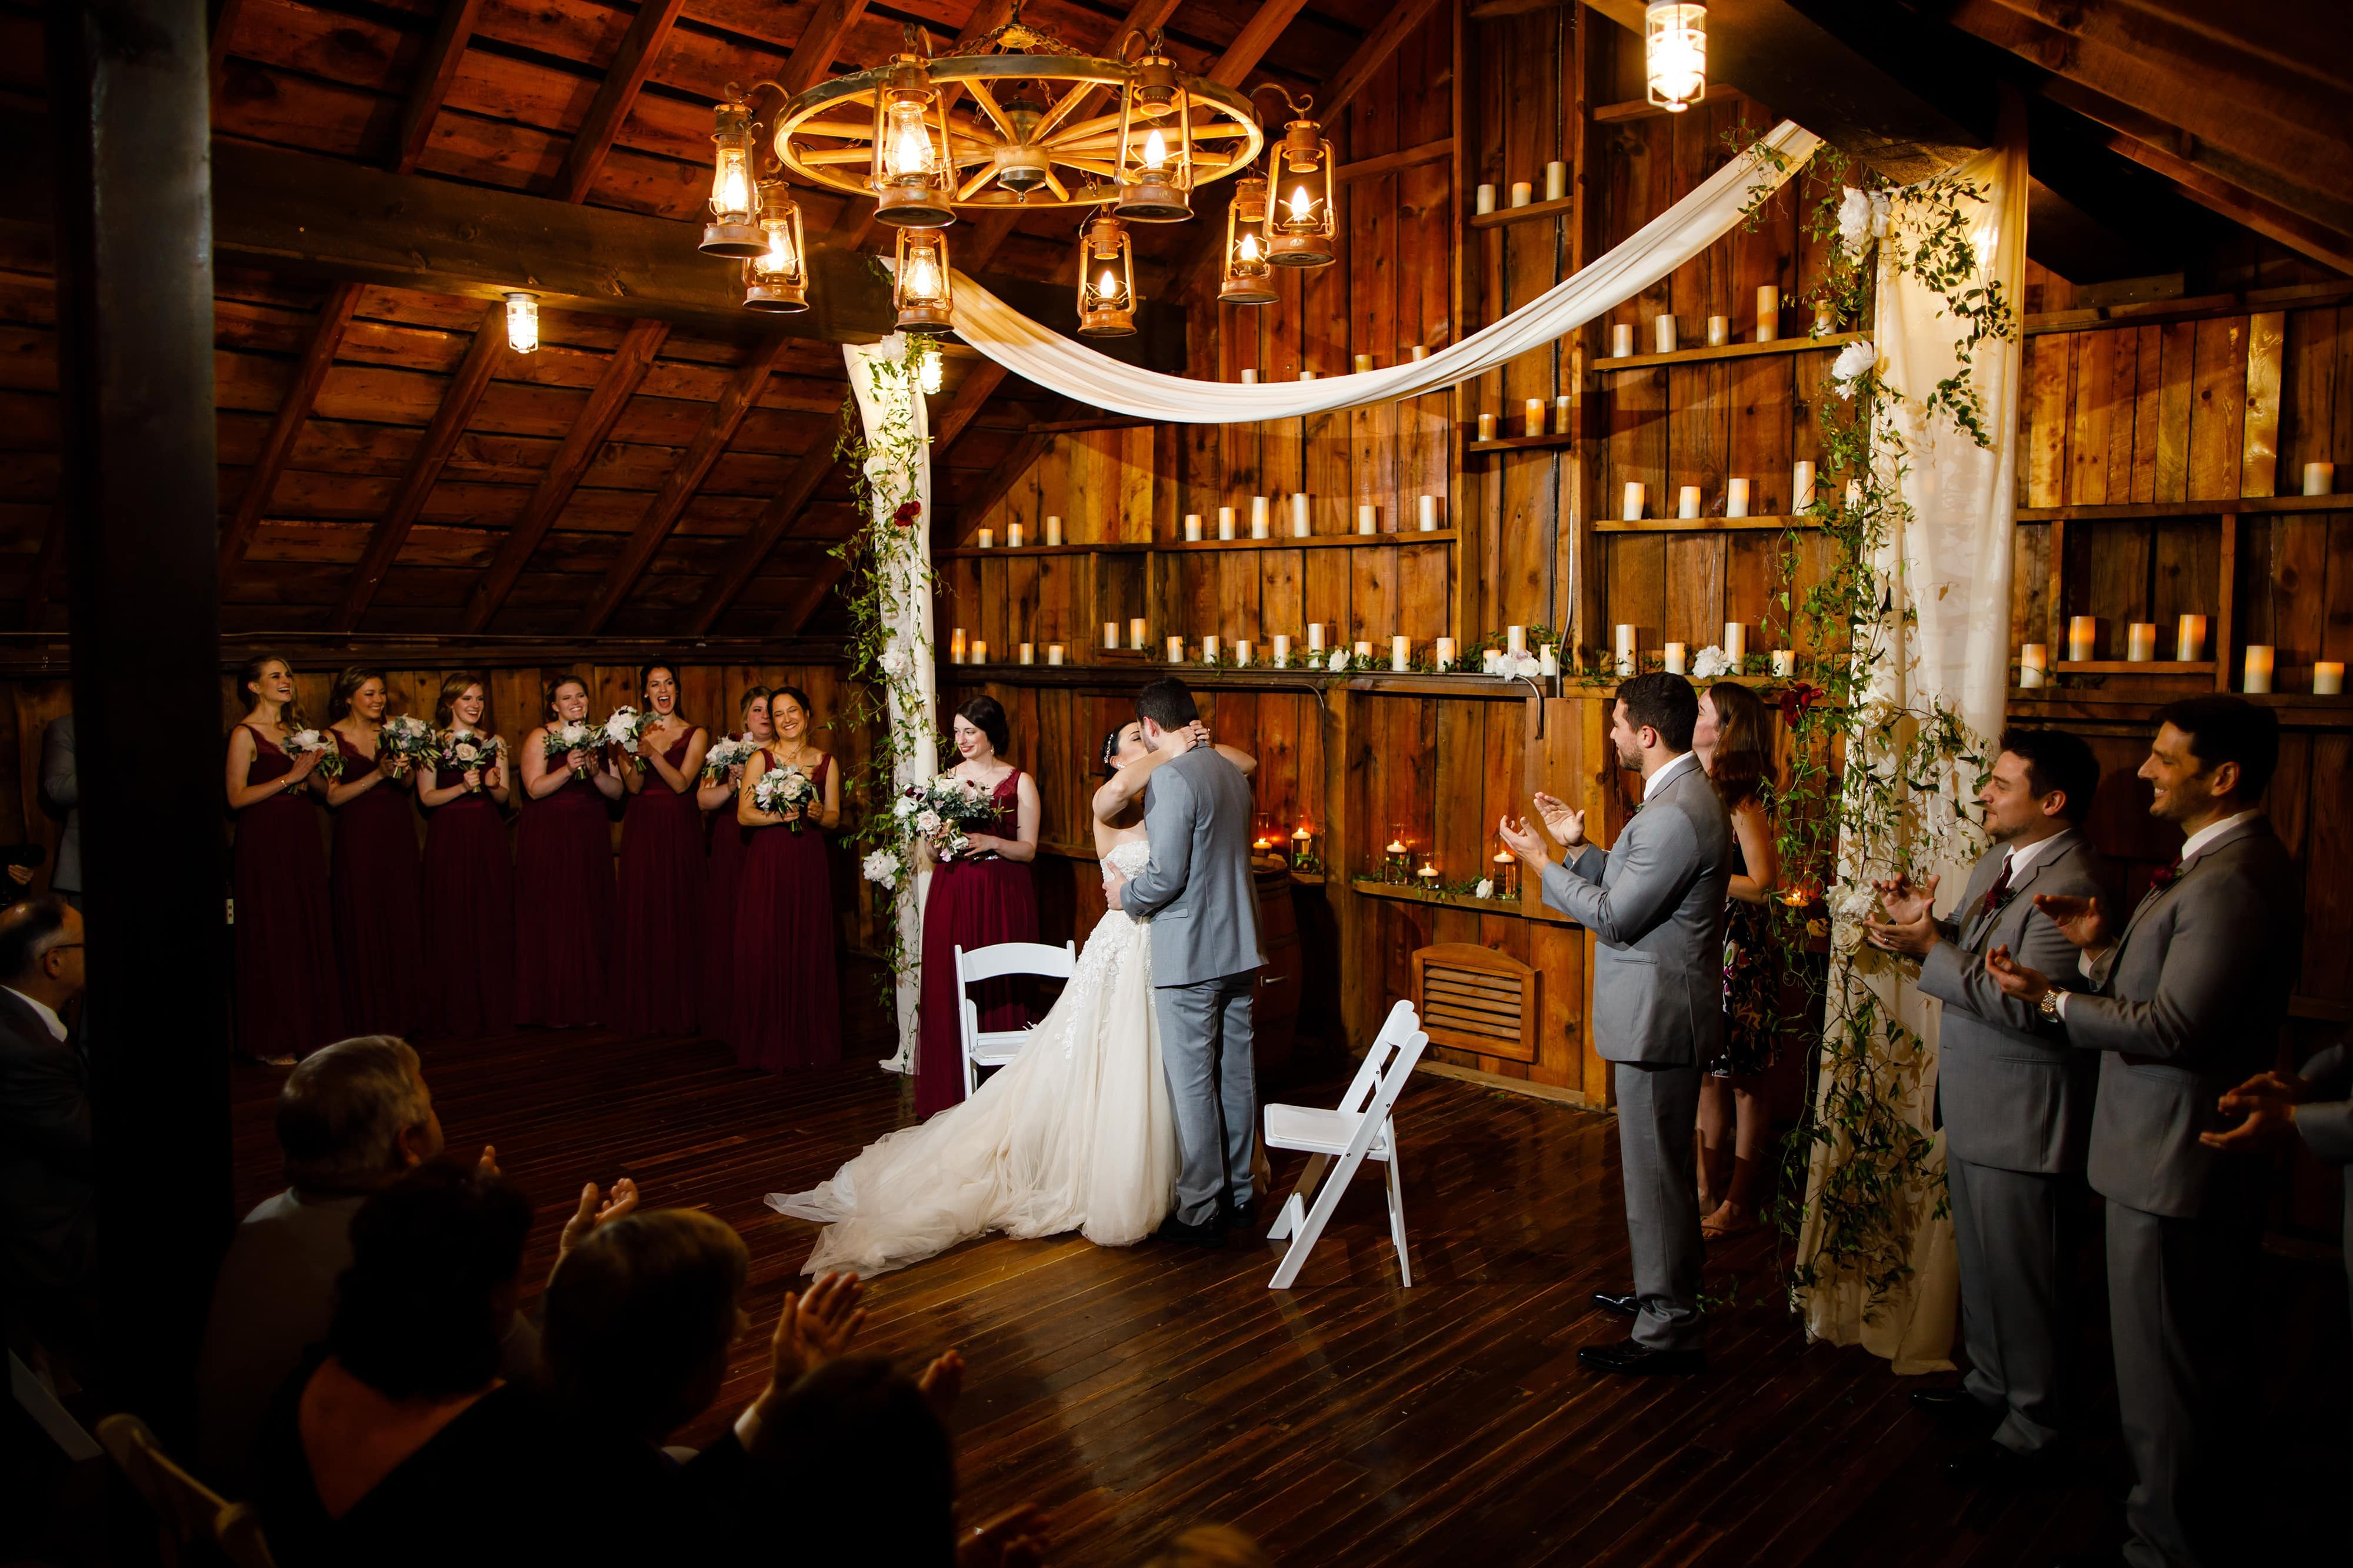 The couple shares their first kiss in the rustic barn loft space during their Crooked WIllow Farms Wedding in Larkspur, Colorado